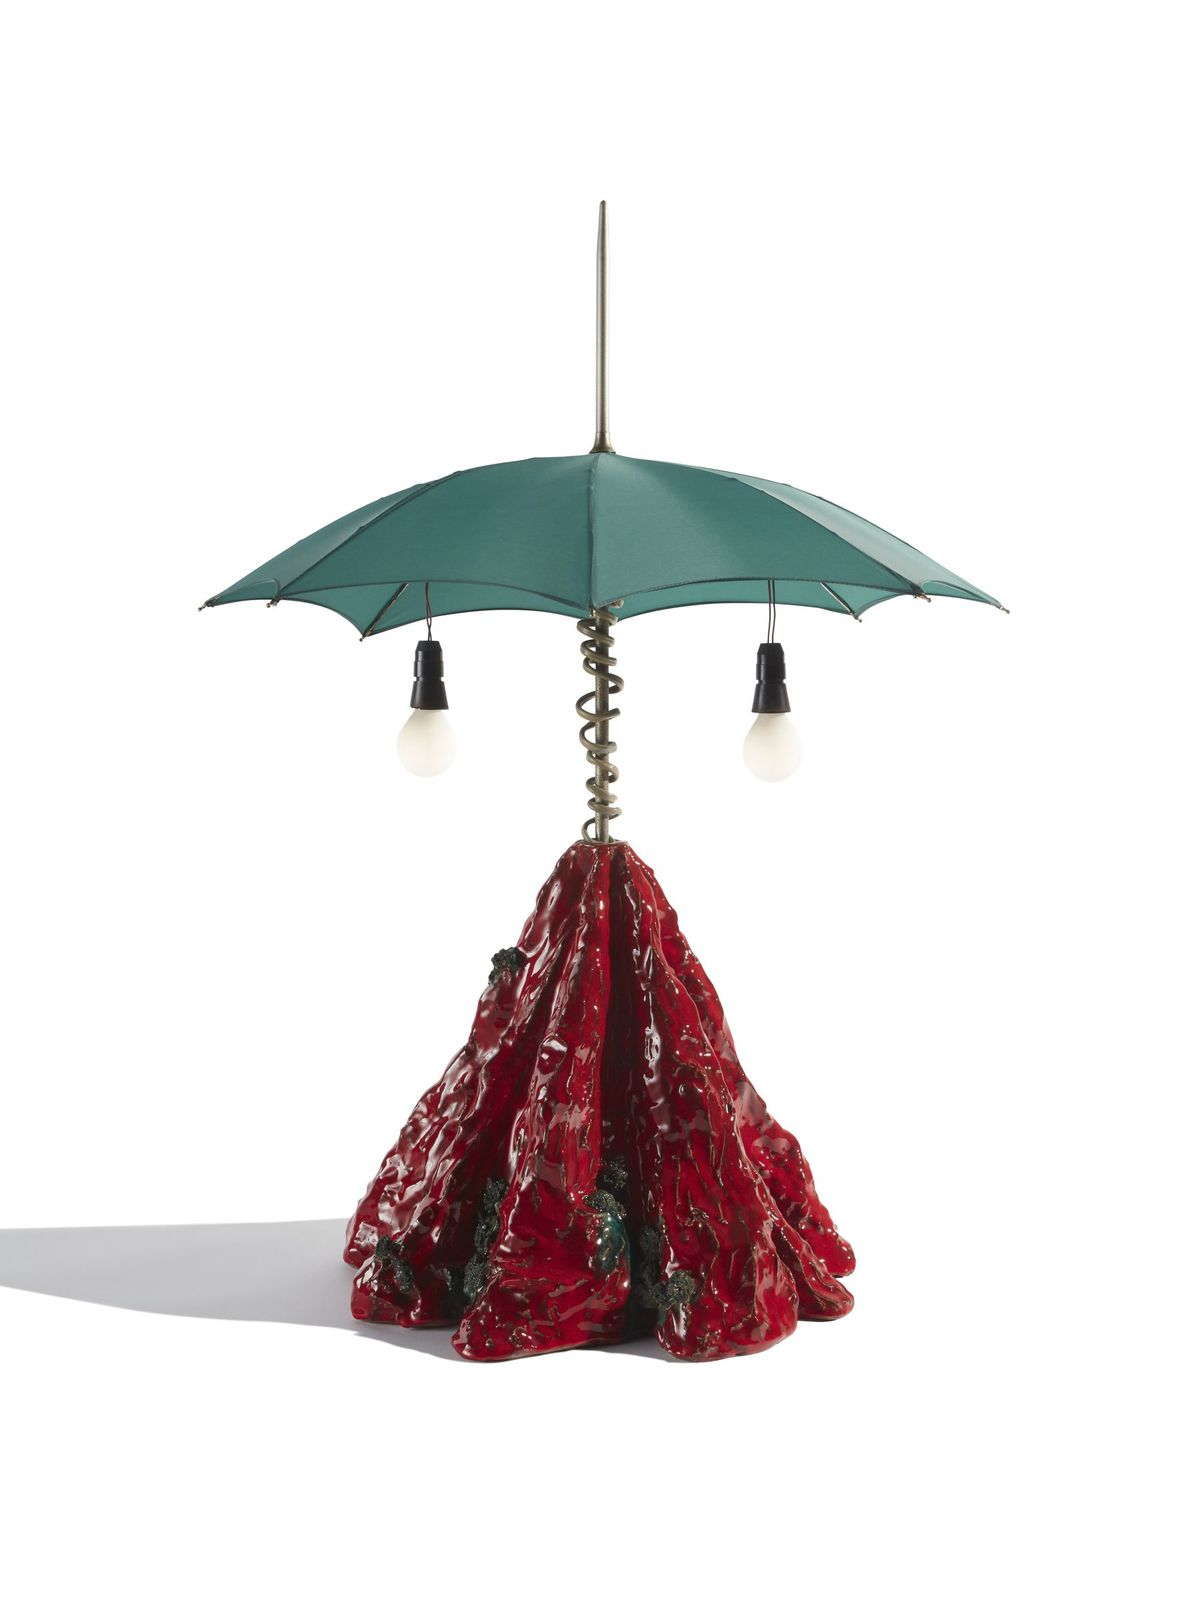 A lamp with a red hand-formed ceramic base and teal umbrella for a shade.